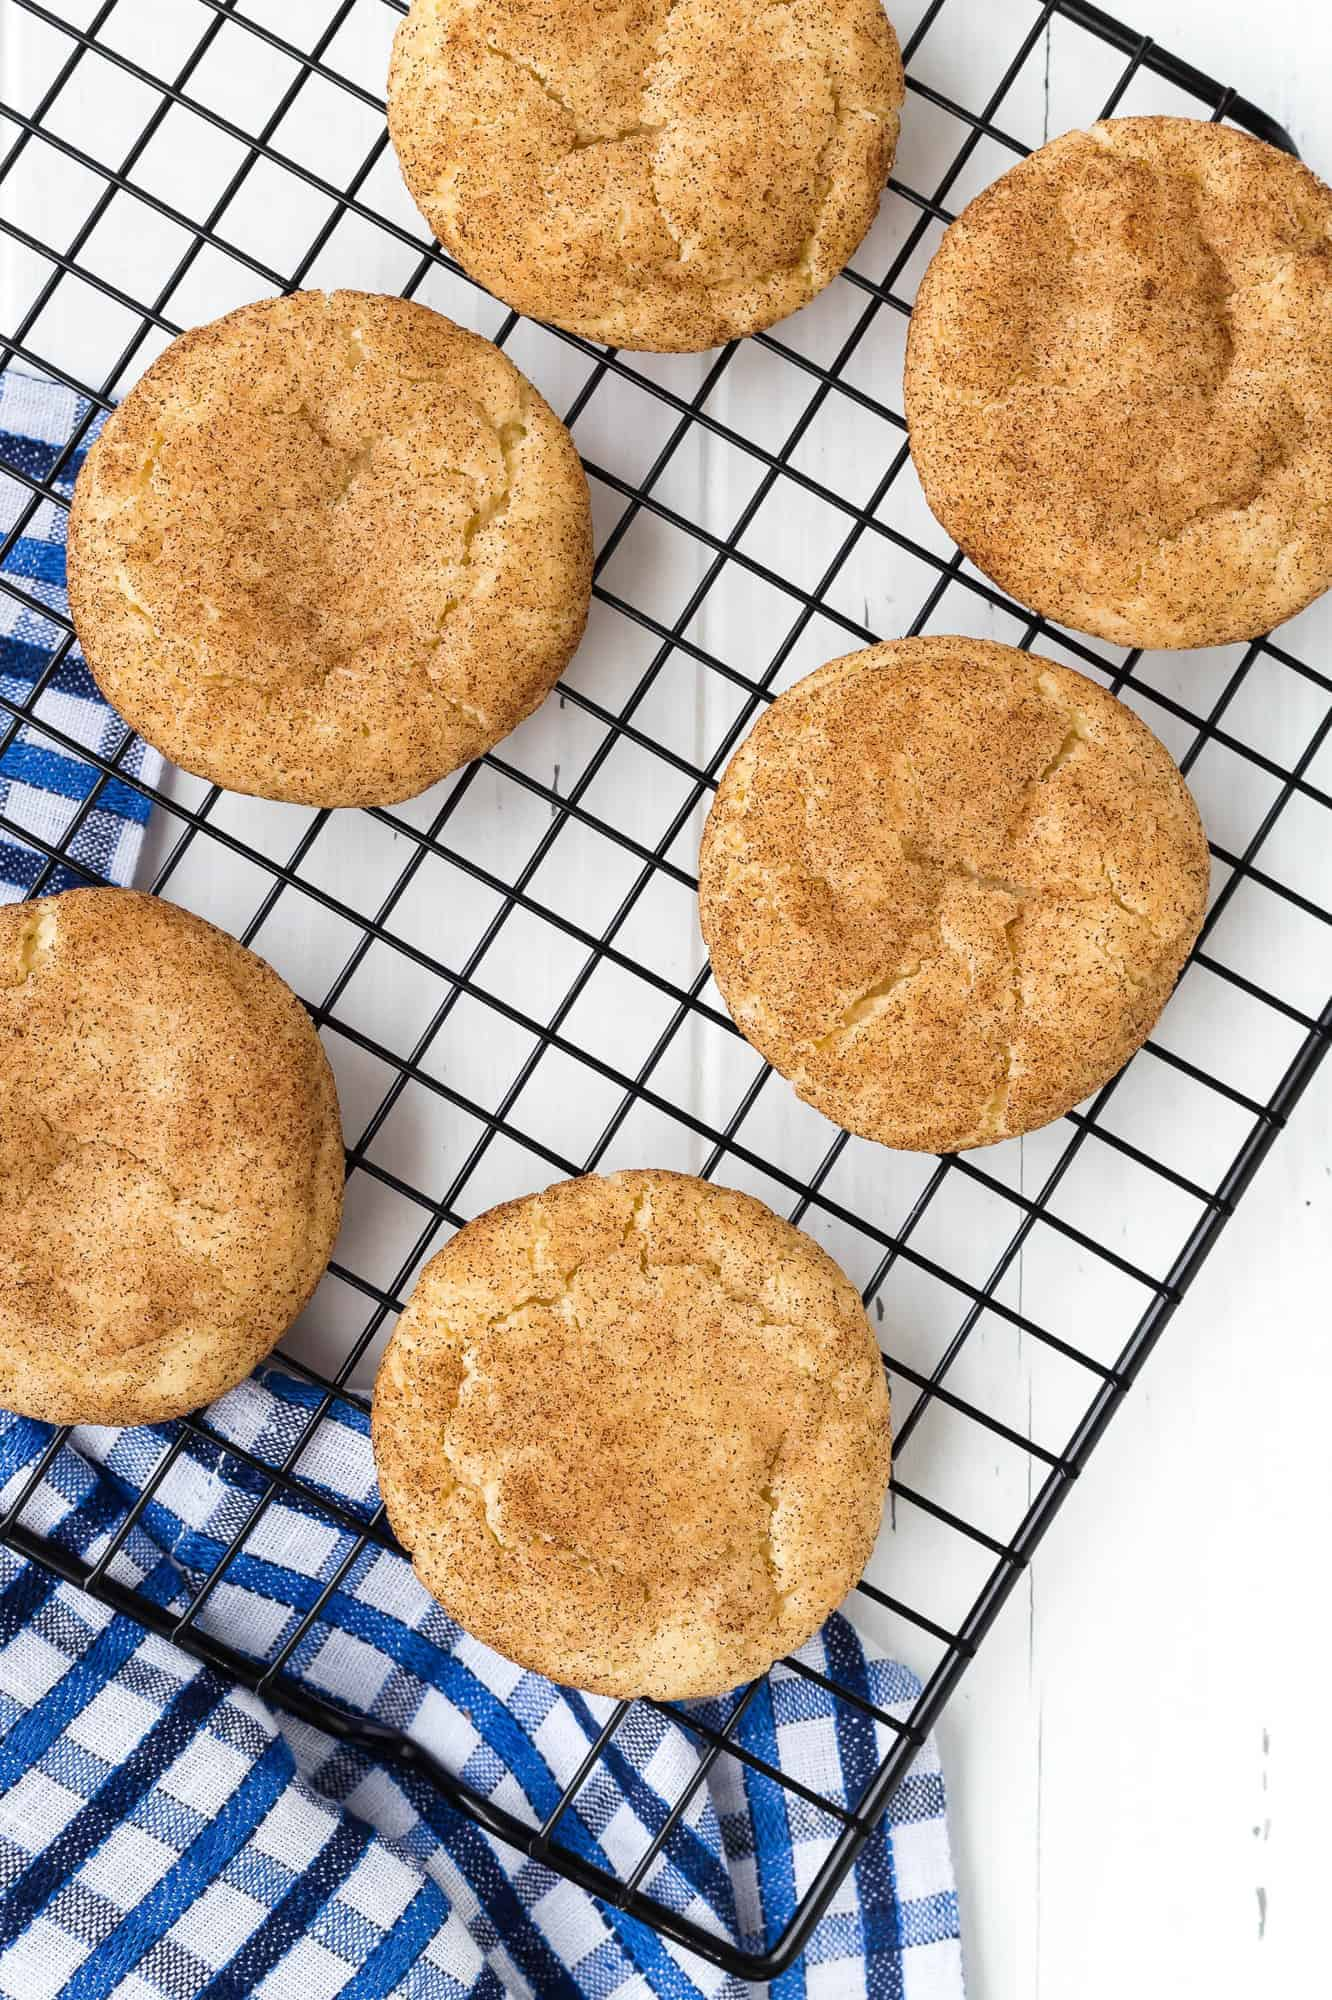 Overhead view of snickerdoodles on a cooling rack with a blue and white towel underneath.